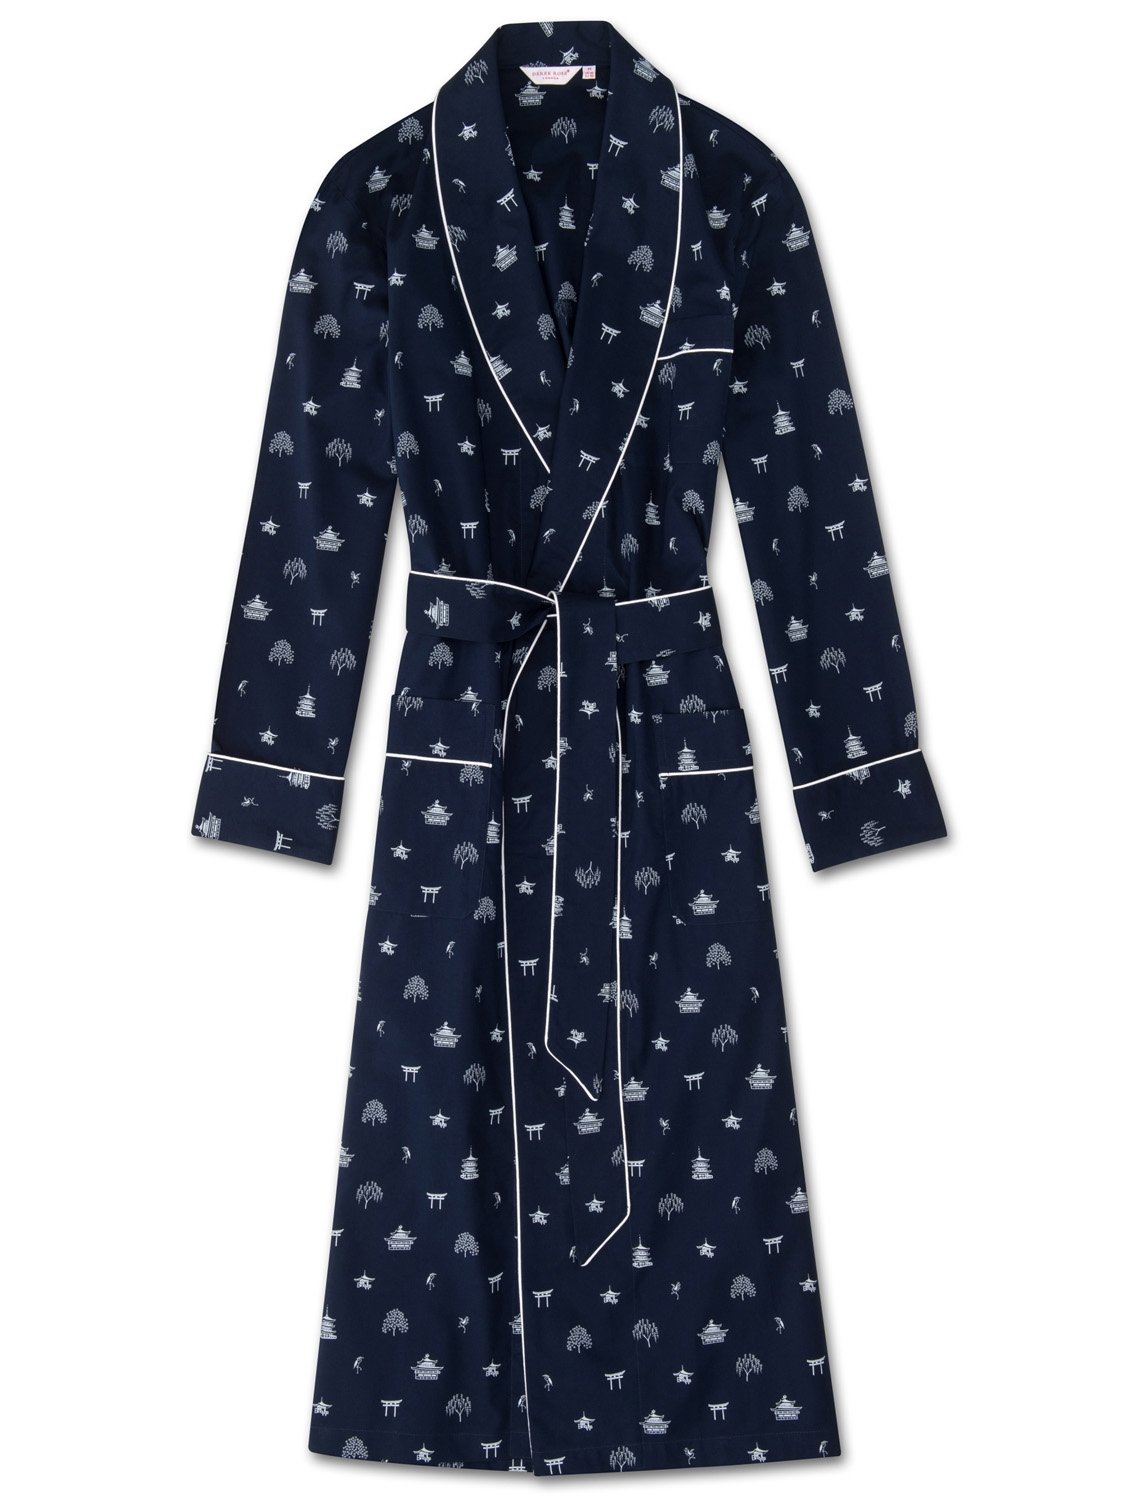 Men's Piped Dressing Gown Nelson 65 Cotton Batiste Navy